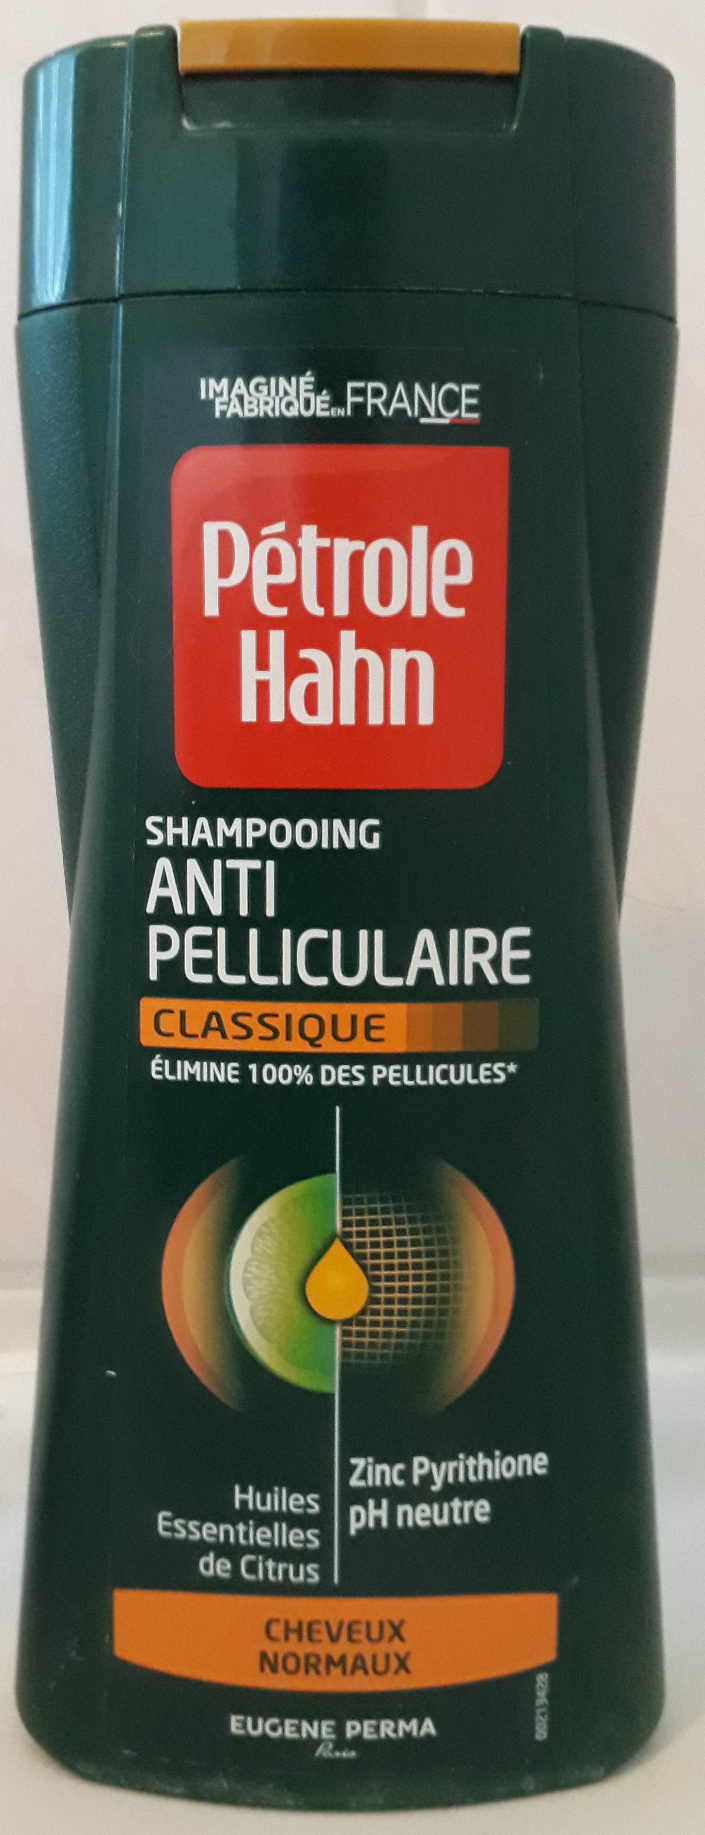 Shampooing anti pelliculaire classique, cheveux normaux - Product - fr